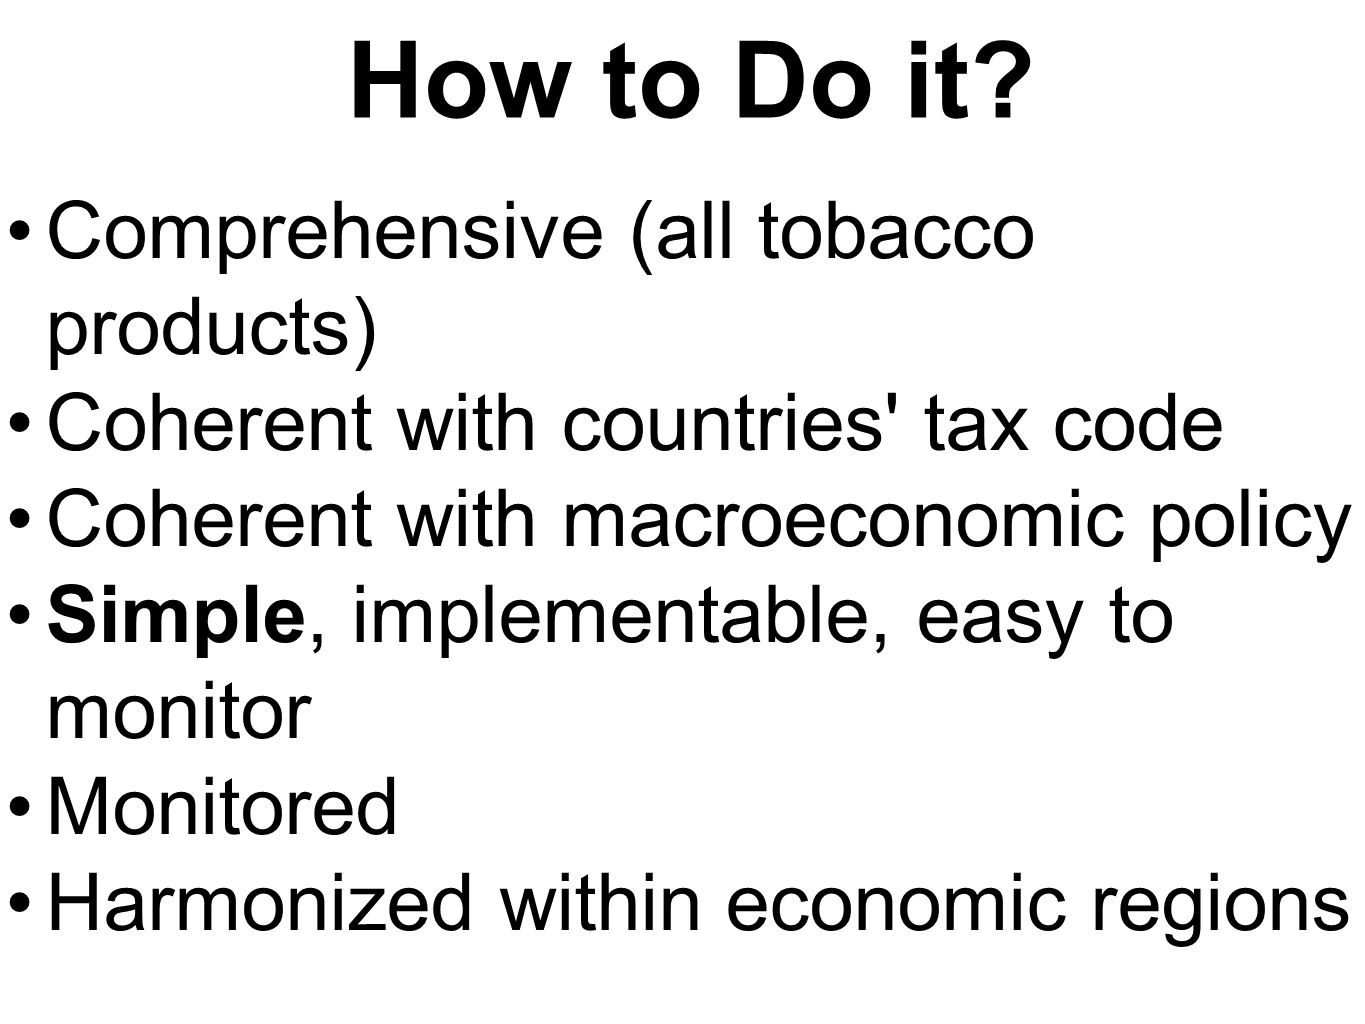 How to Do it Comprehensive (all tobacco products)